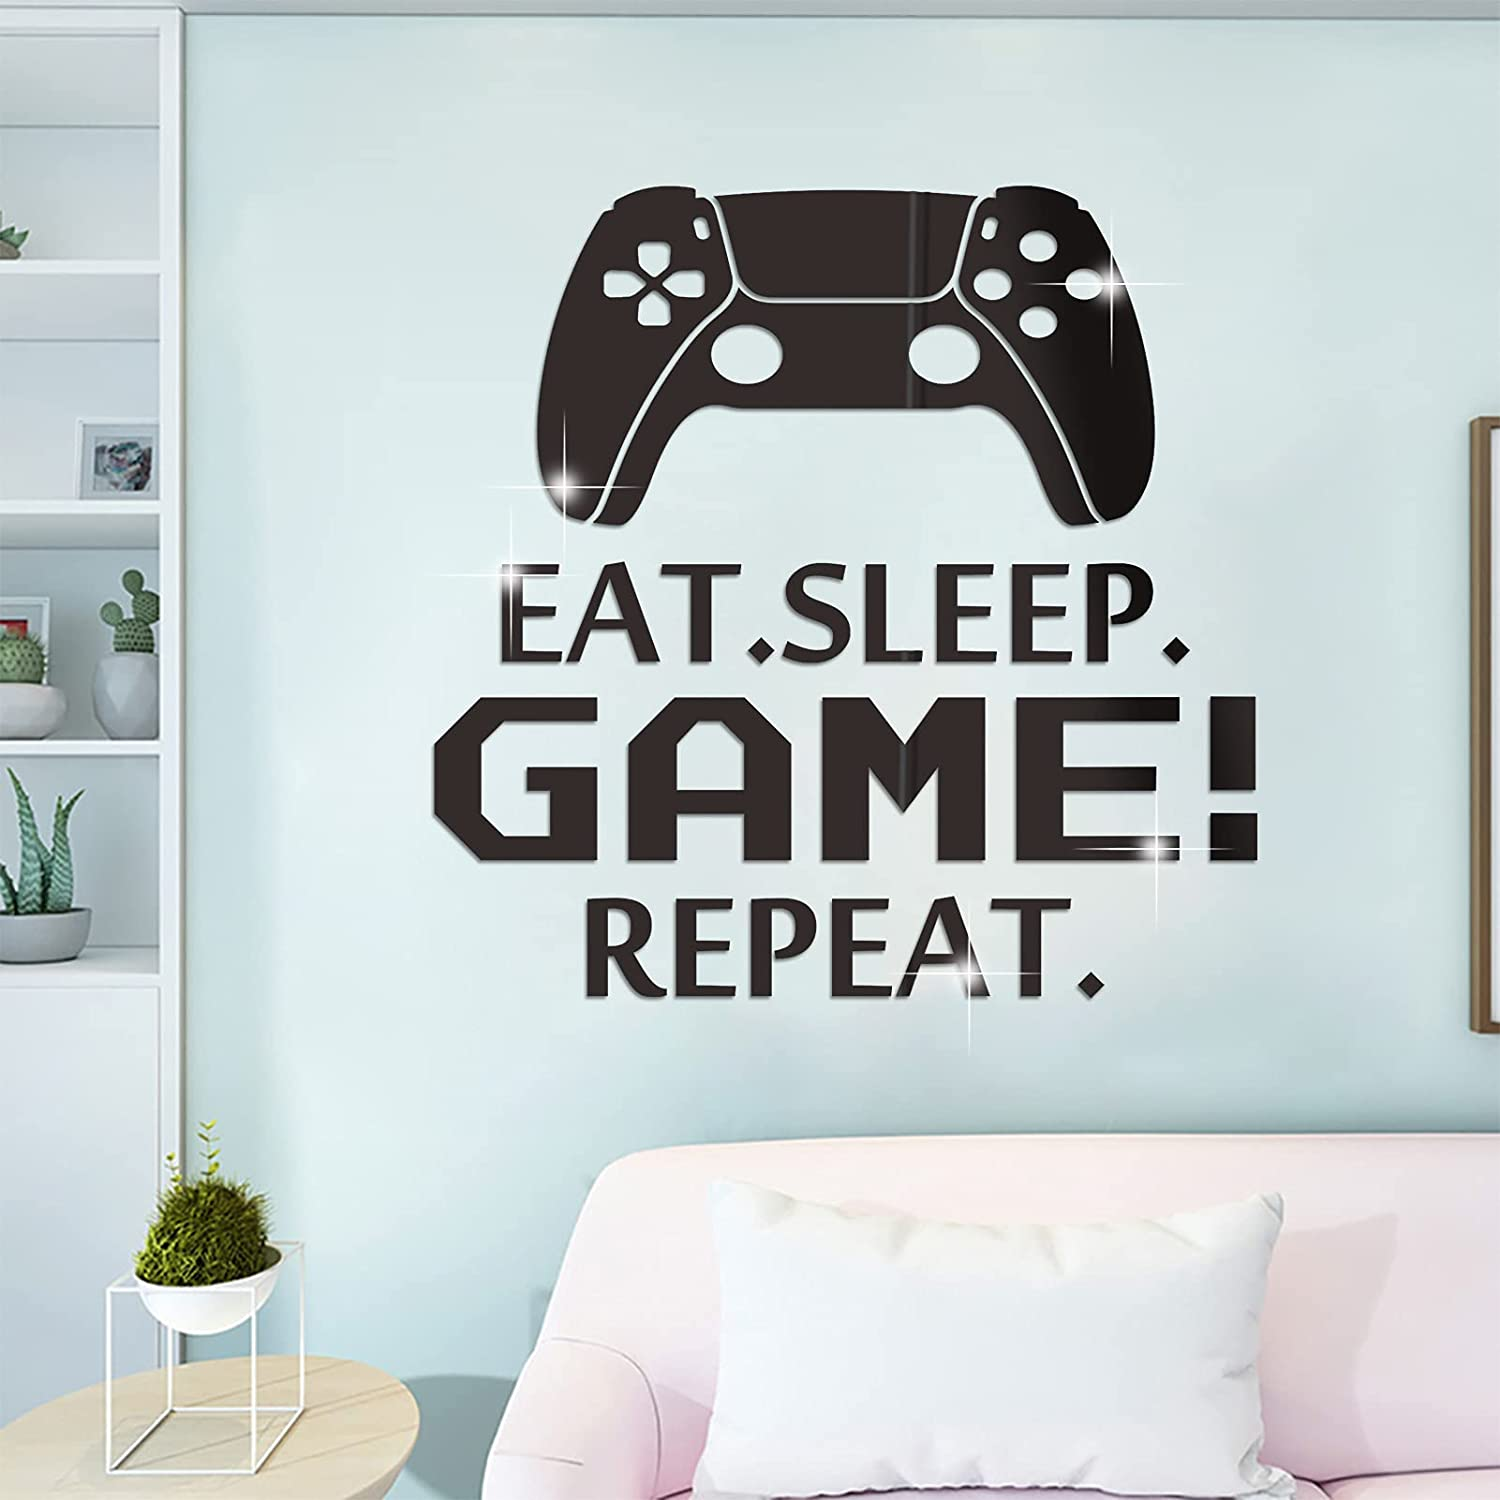 3D Removable Acrylic Mirror Wall Decals, FLMOUTN Creative DIY Eat Sleep Repeat Game Mirror Surface Wall Letter Art Stickers for Boys Girls Video Game Room Decor